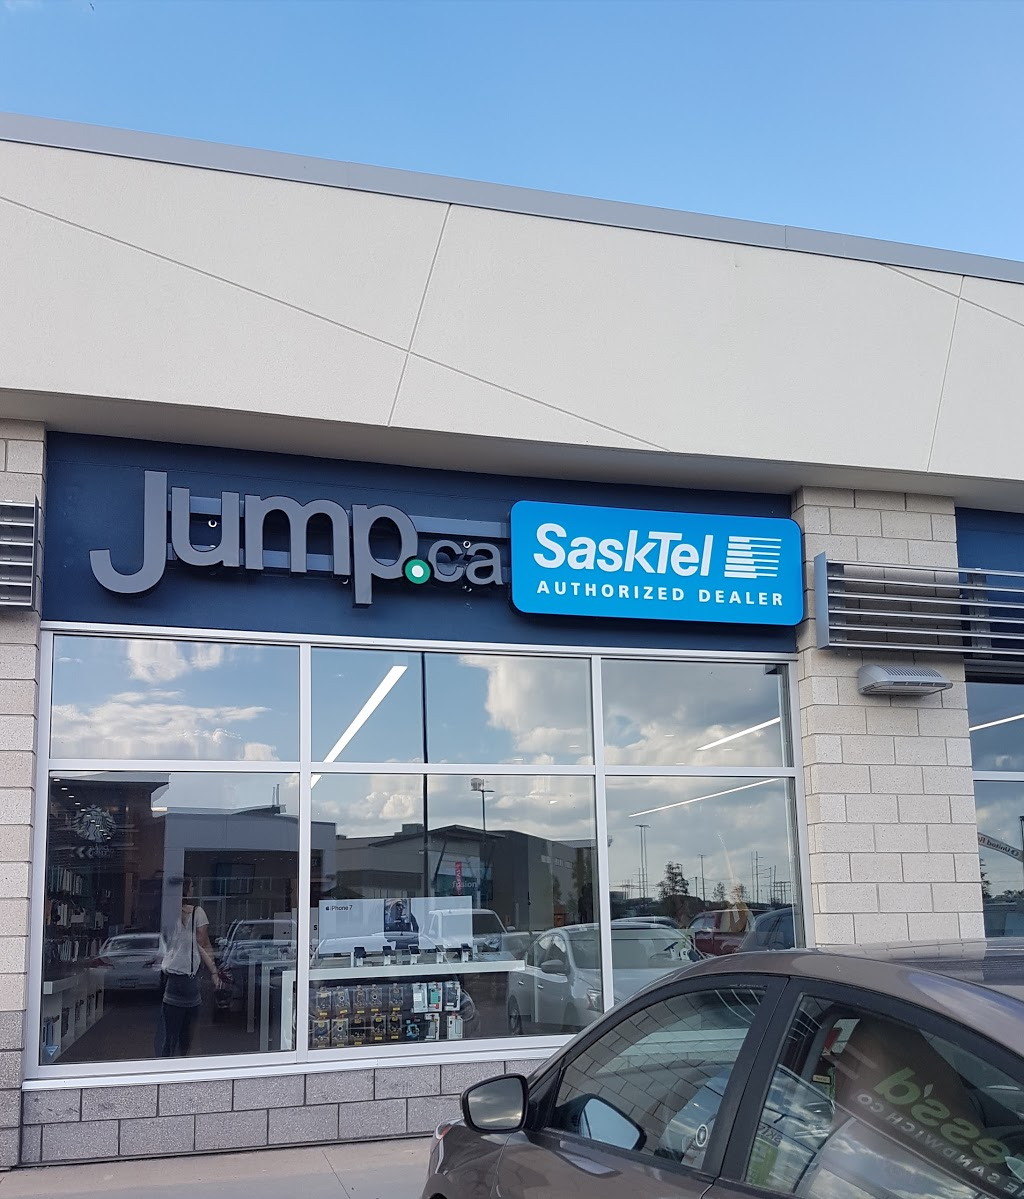 Jump.ca Preston Crossing | electronics store | 1701 Preston Ave N #100, Saskatoon, SK S7N 4V2, Canada | 3066525867 OR +1 306-652-5867